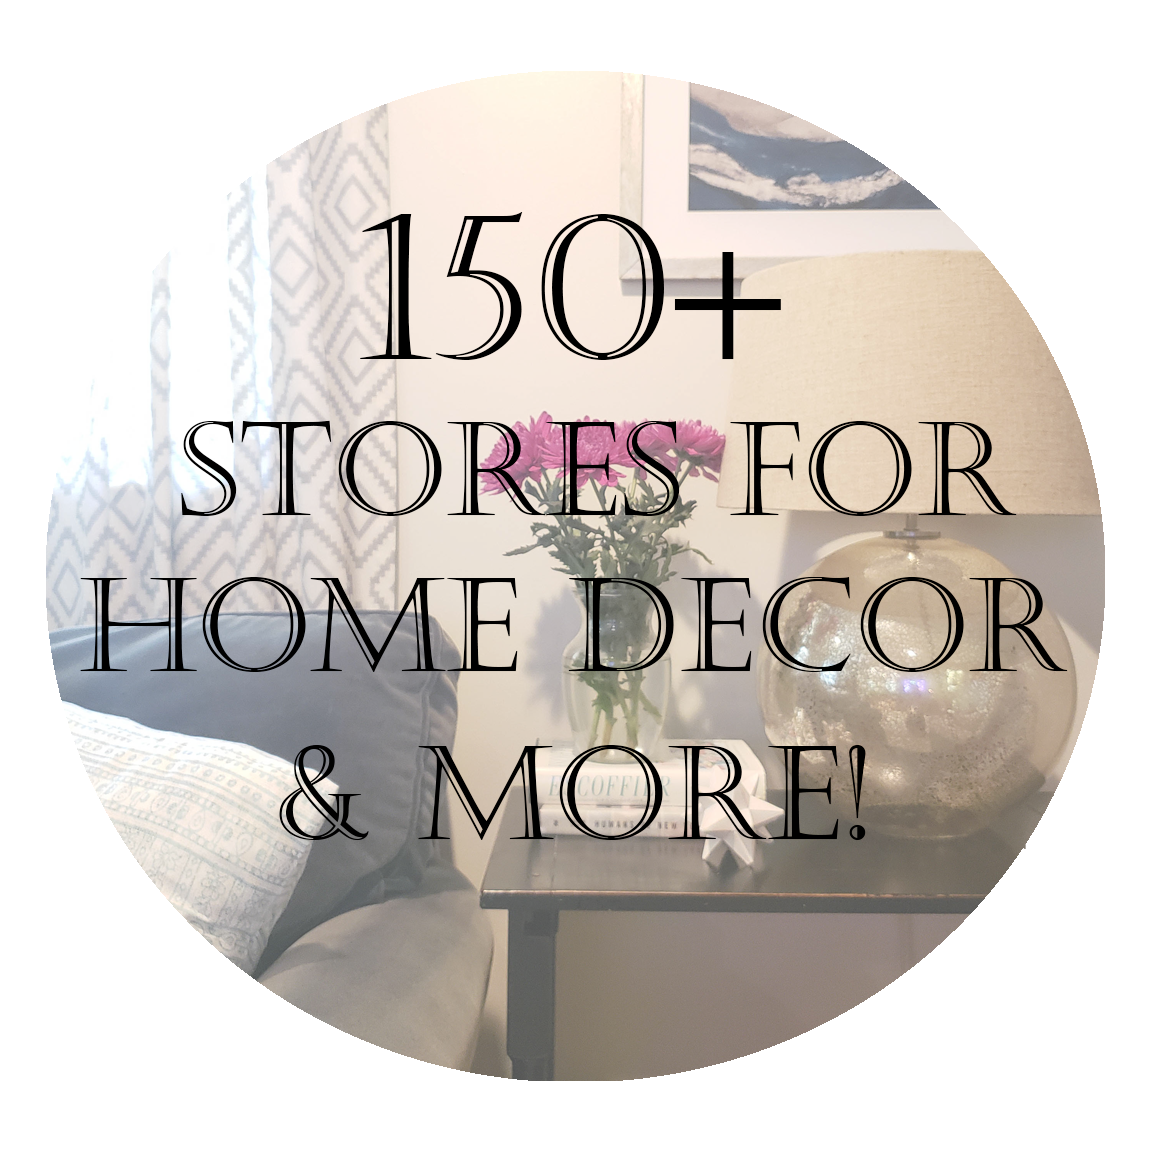 150+ Online Stores for Home Decor & More!